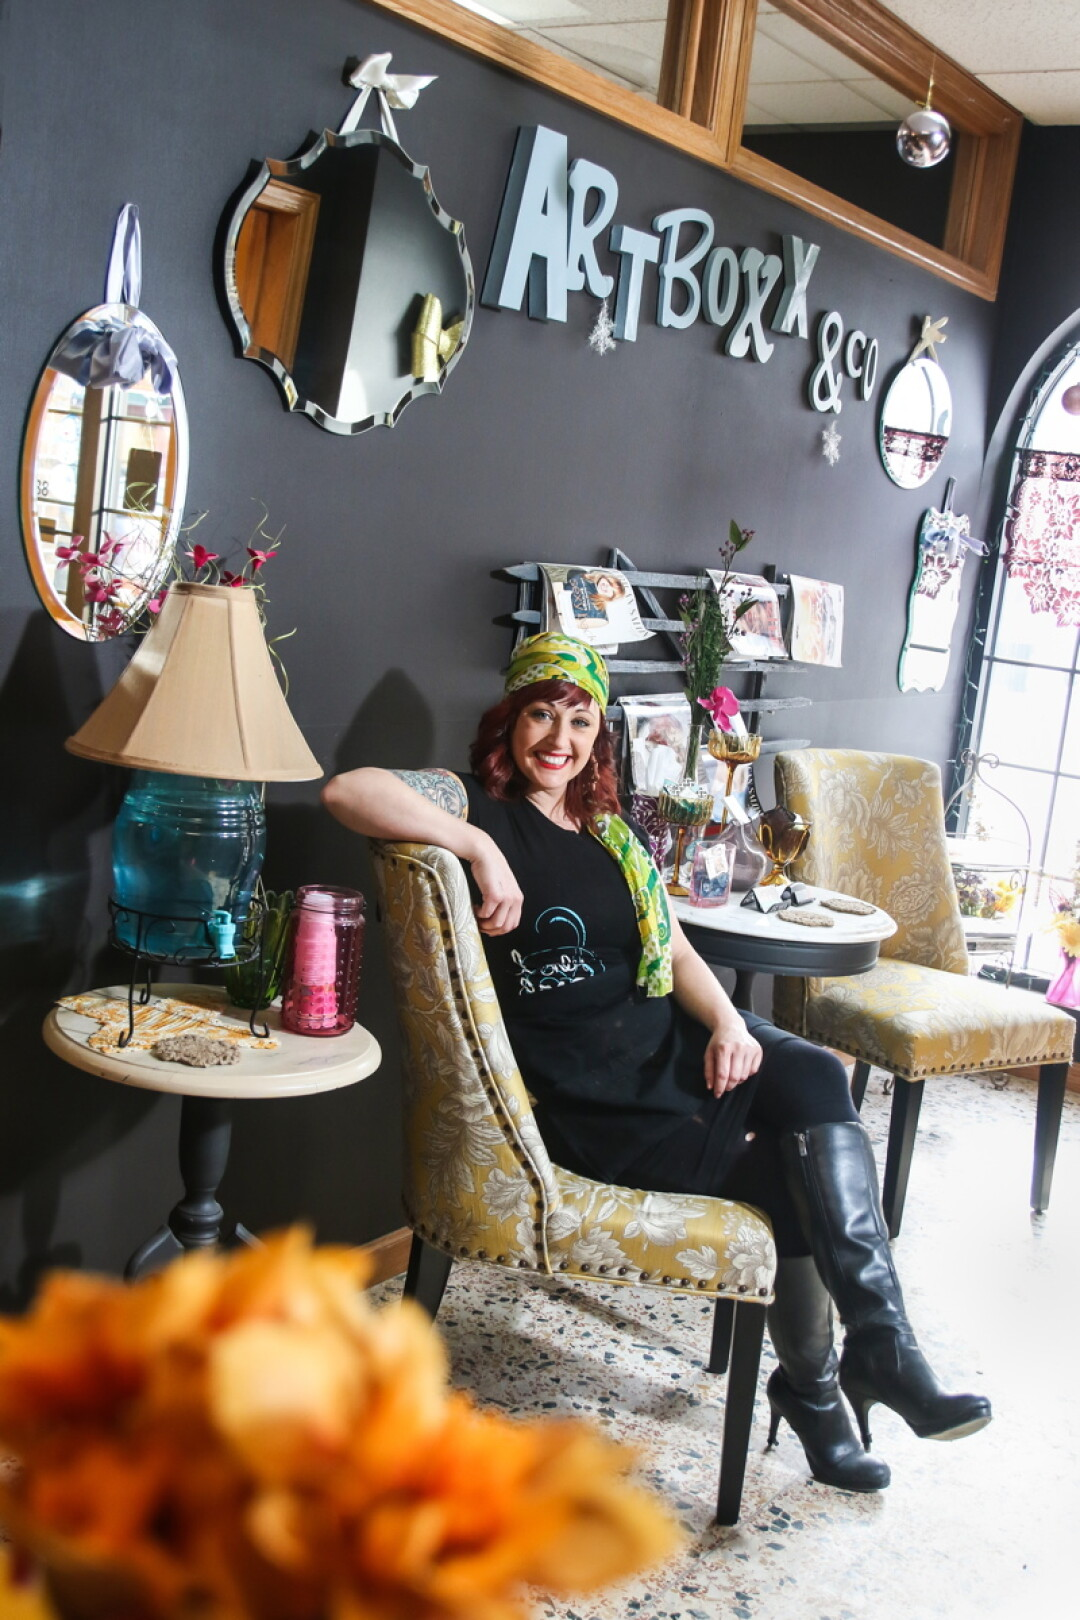 THESE BOOTS WERE MADE FOR STYLIN'. Nikki Luft owns ArtBoxx Salon & Co. in downtown Eau Claire.